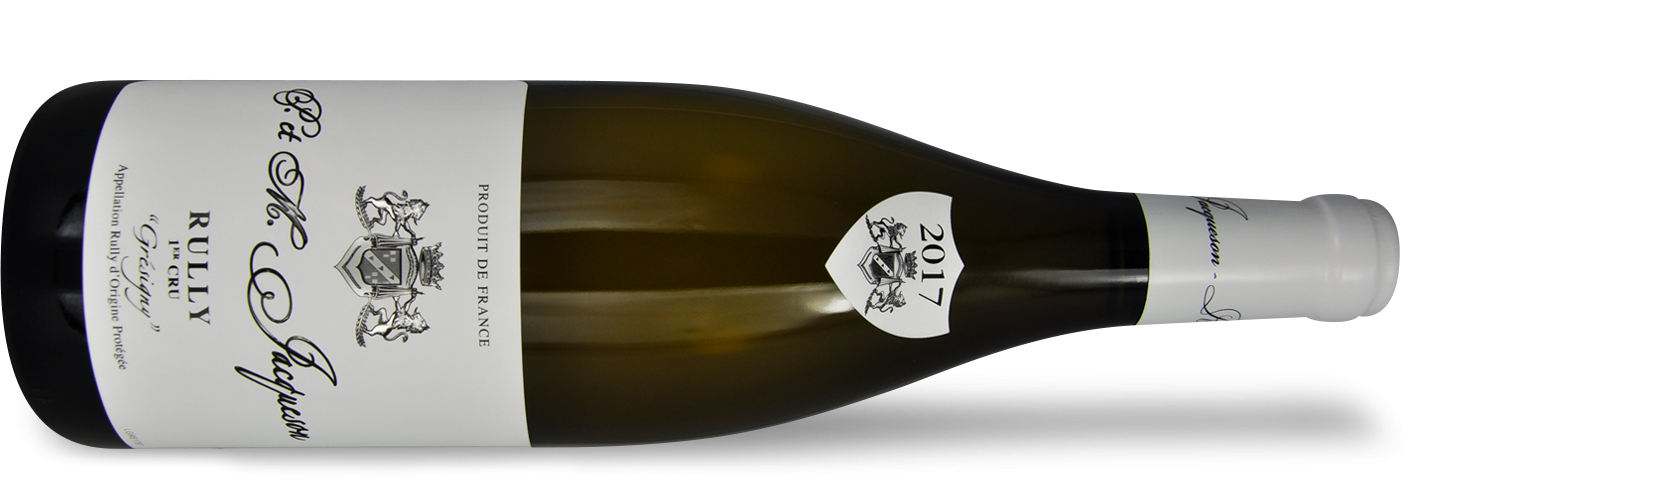 """Domaine Paul & Marie JACQUESON, Rully 1er Cru """"GRESIGNY"""" 2017"""